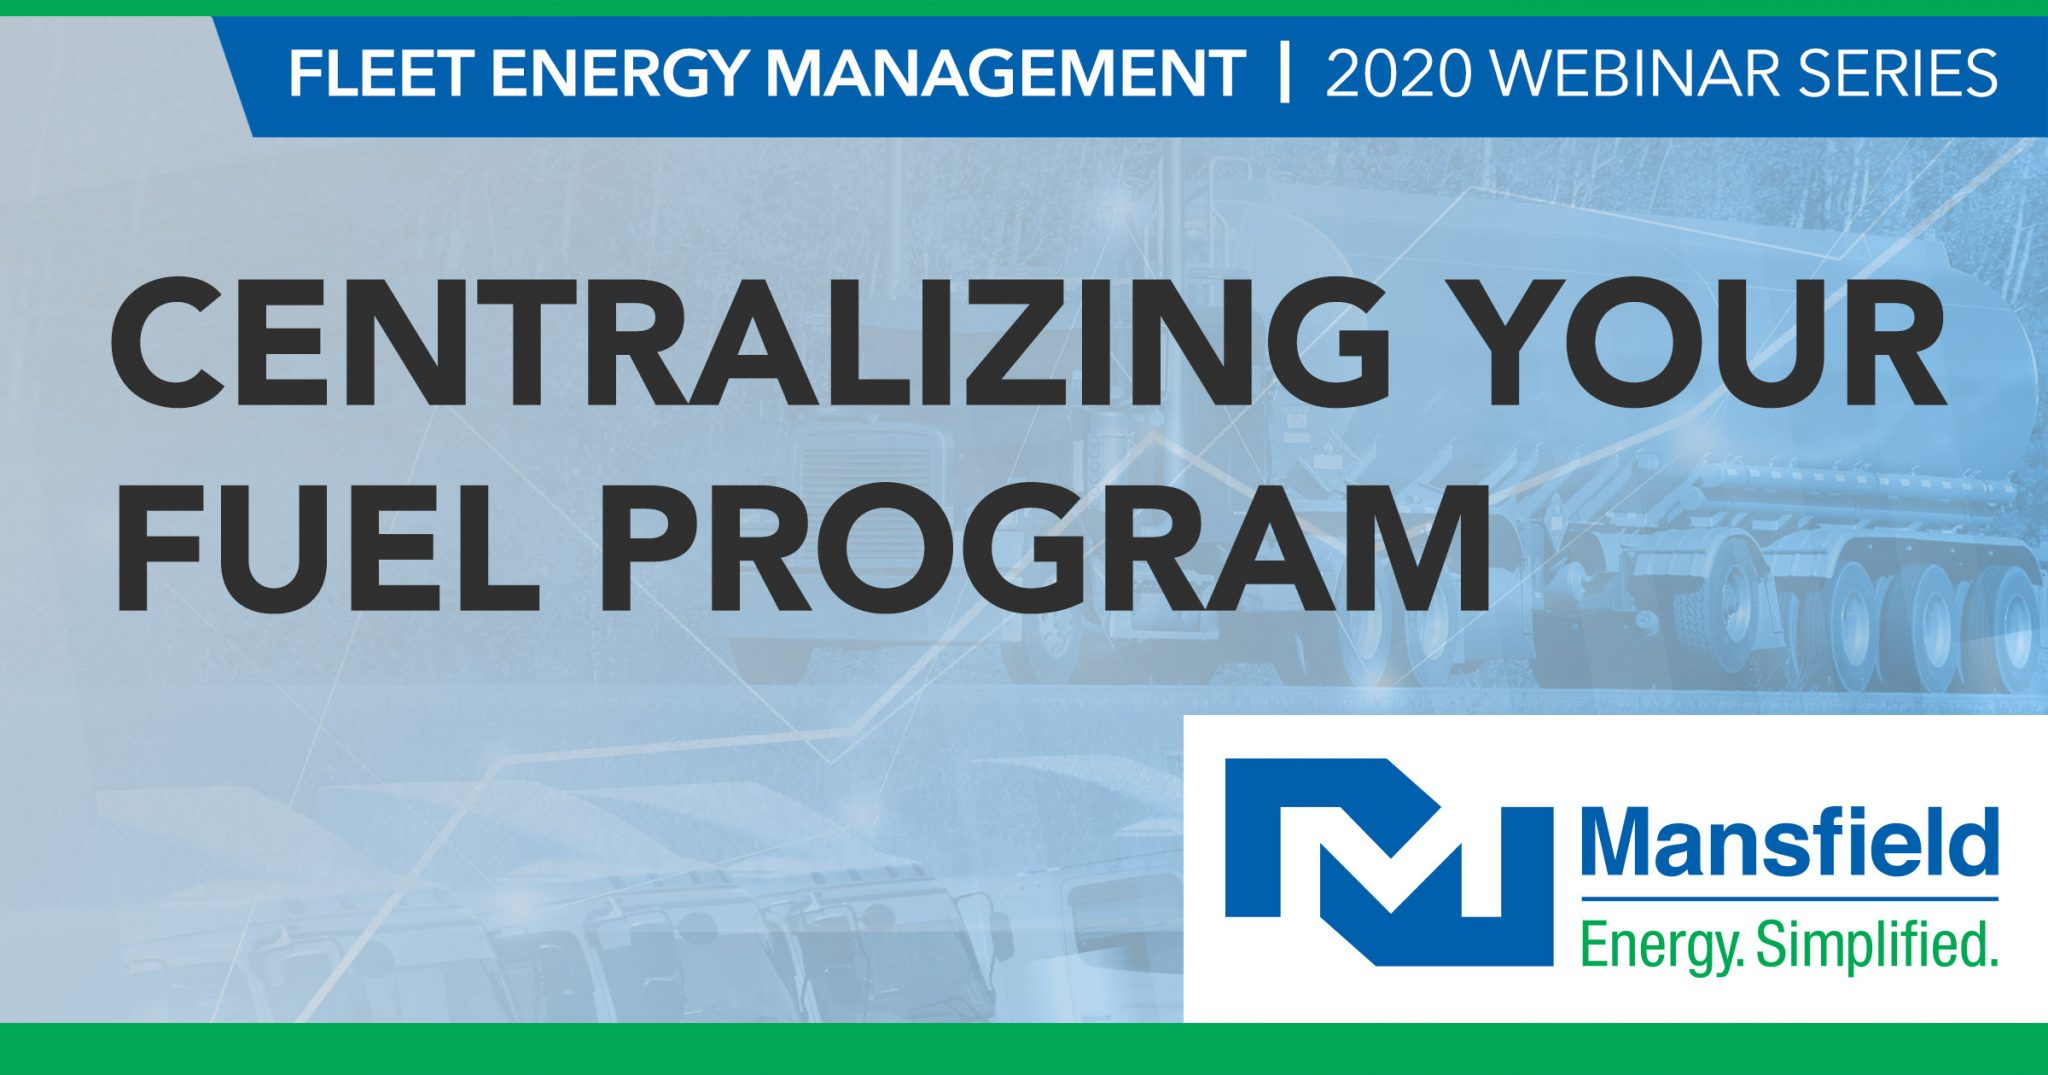 Webinar - Fuel Program Centralization